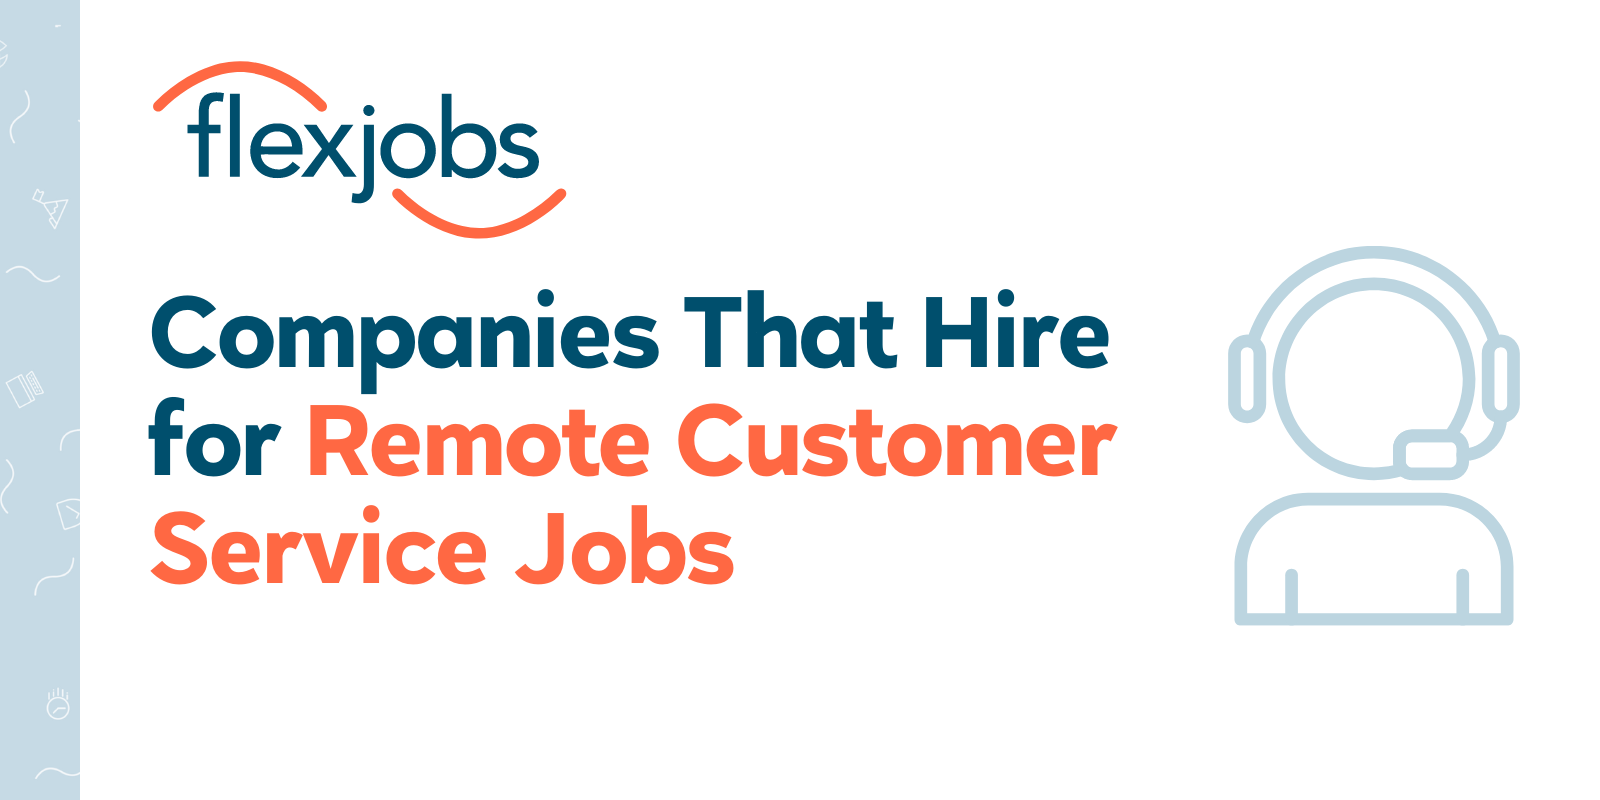 12 Companies That Hire For Remote Work From Home Customer Service Jobs Flexjobs